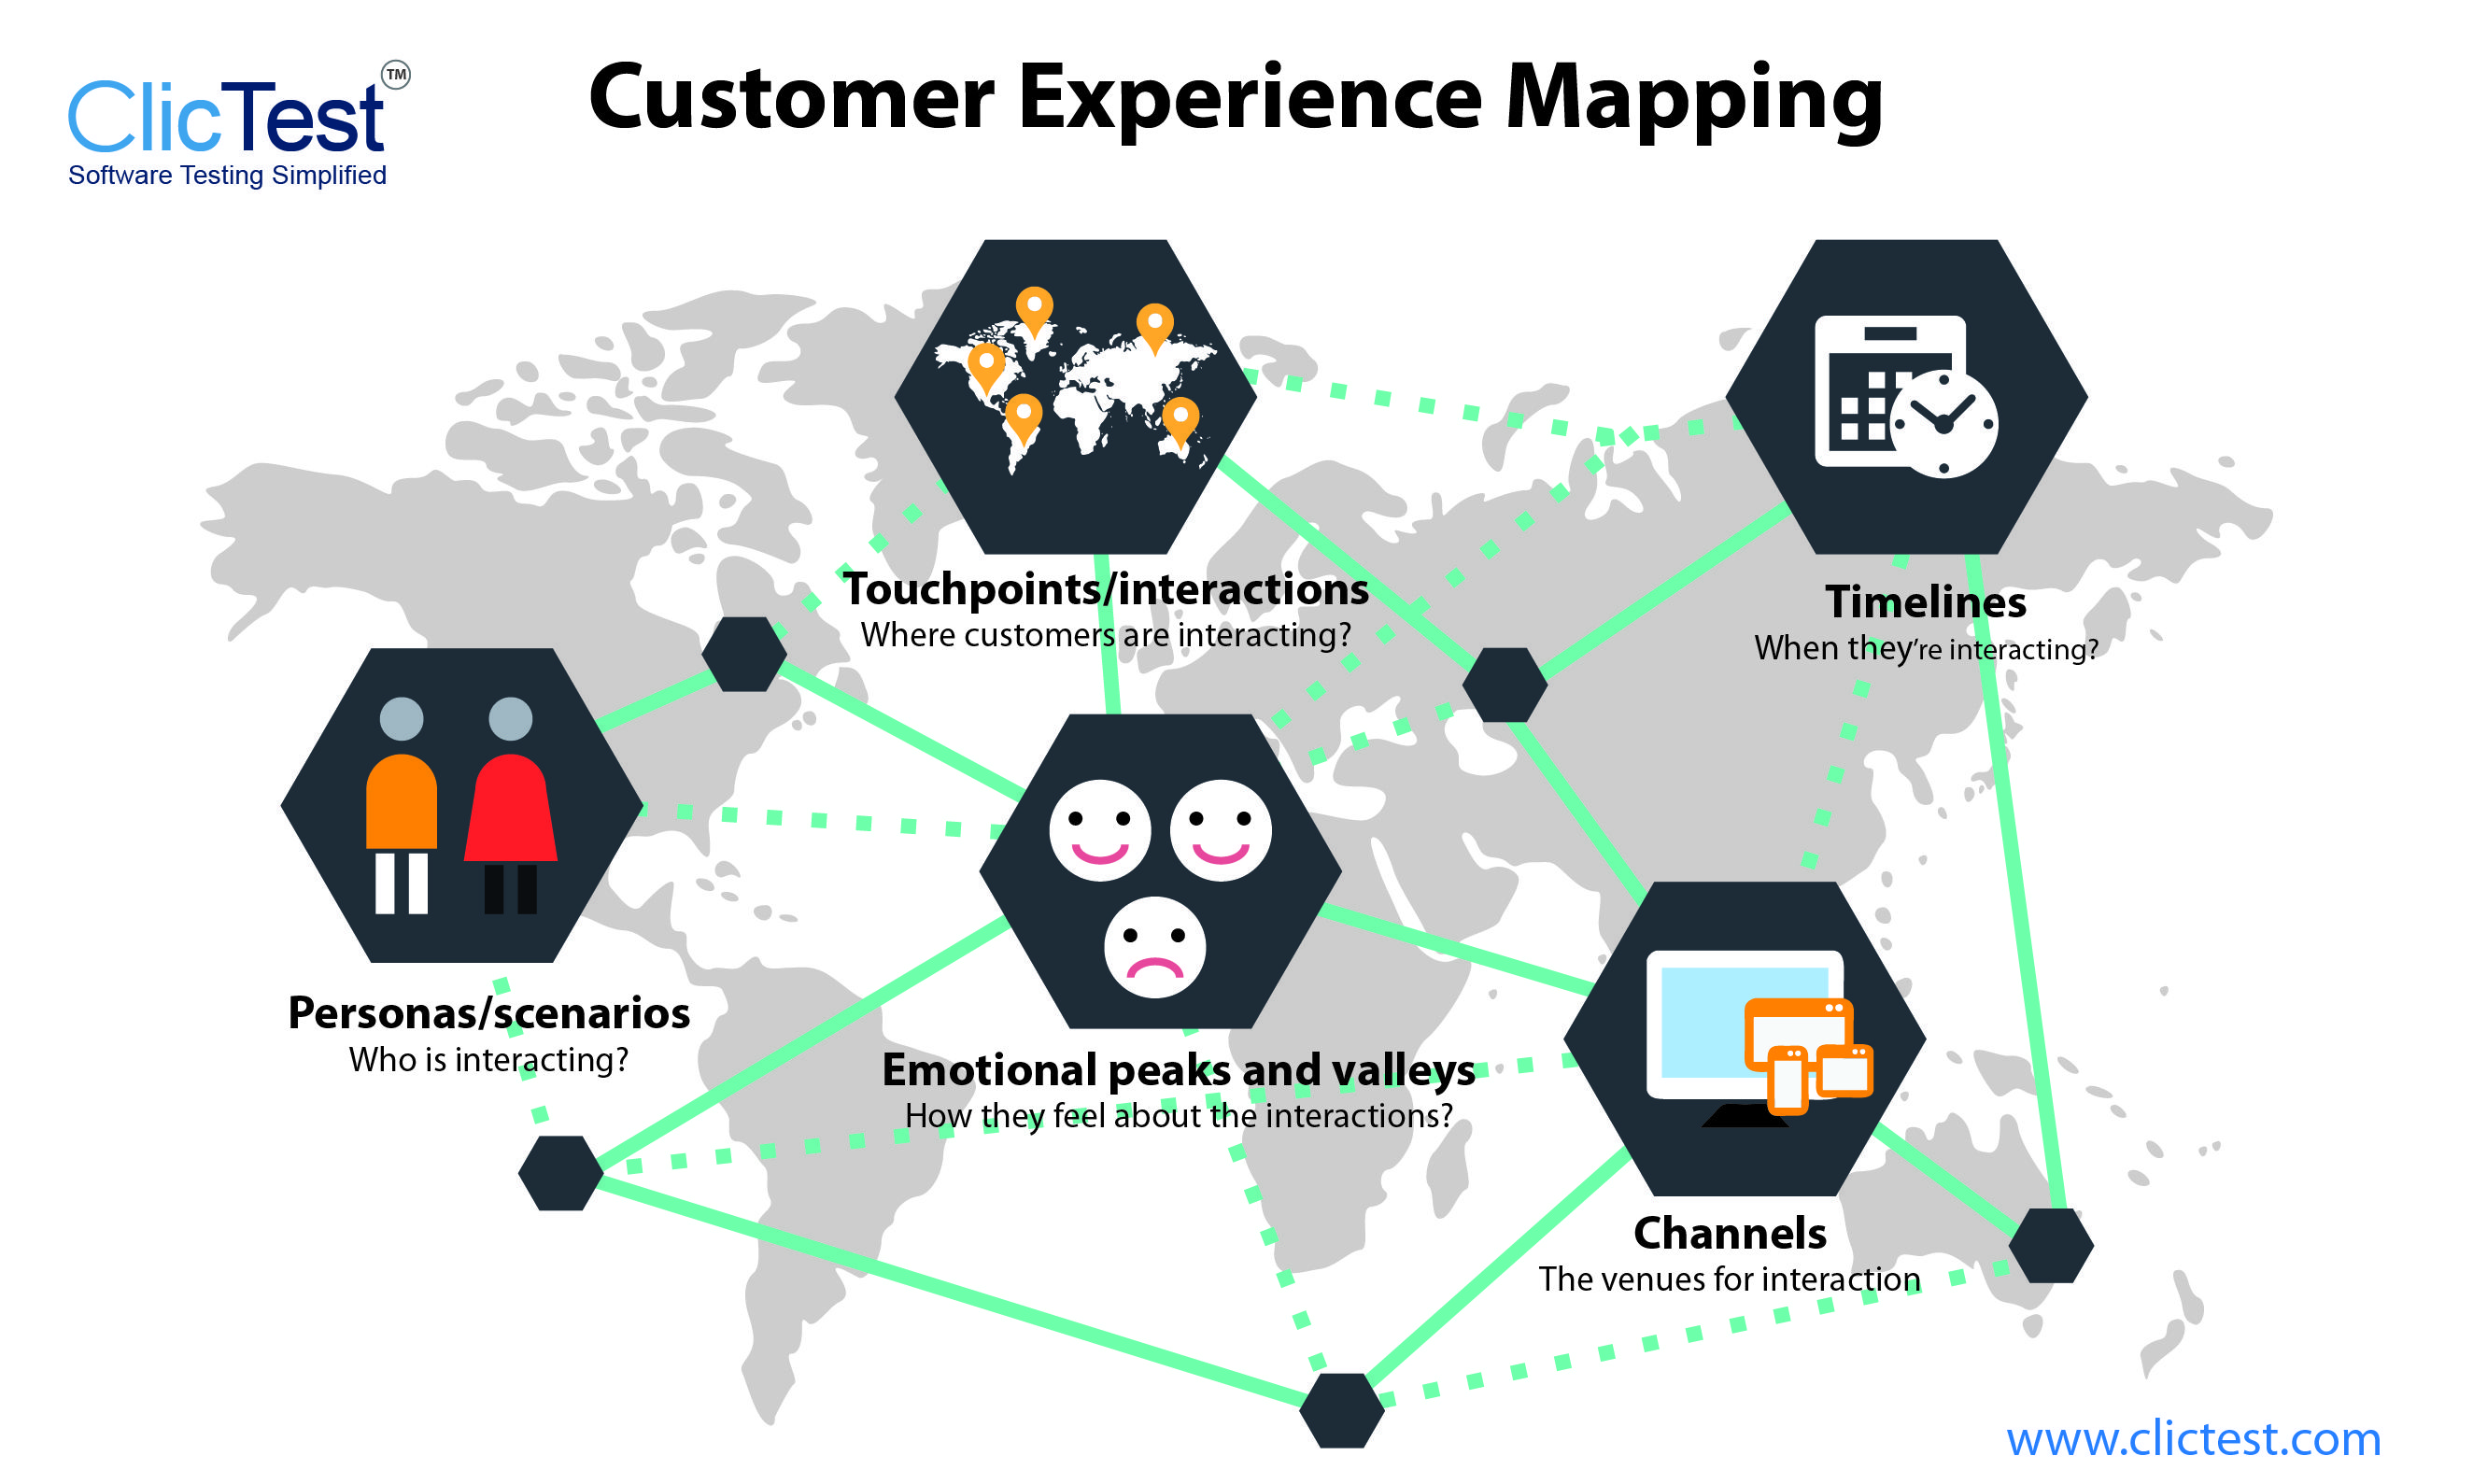 Customer Experience Testing is The Real Key to Digital Business Success. Watch the recording at https://www.youtube.com/embed/s-L3W8882SE